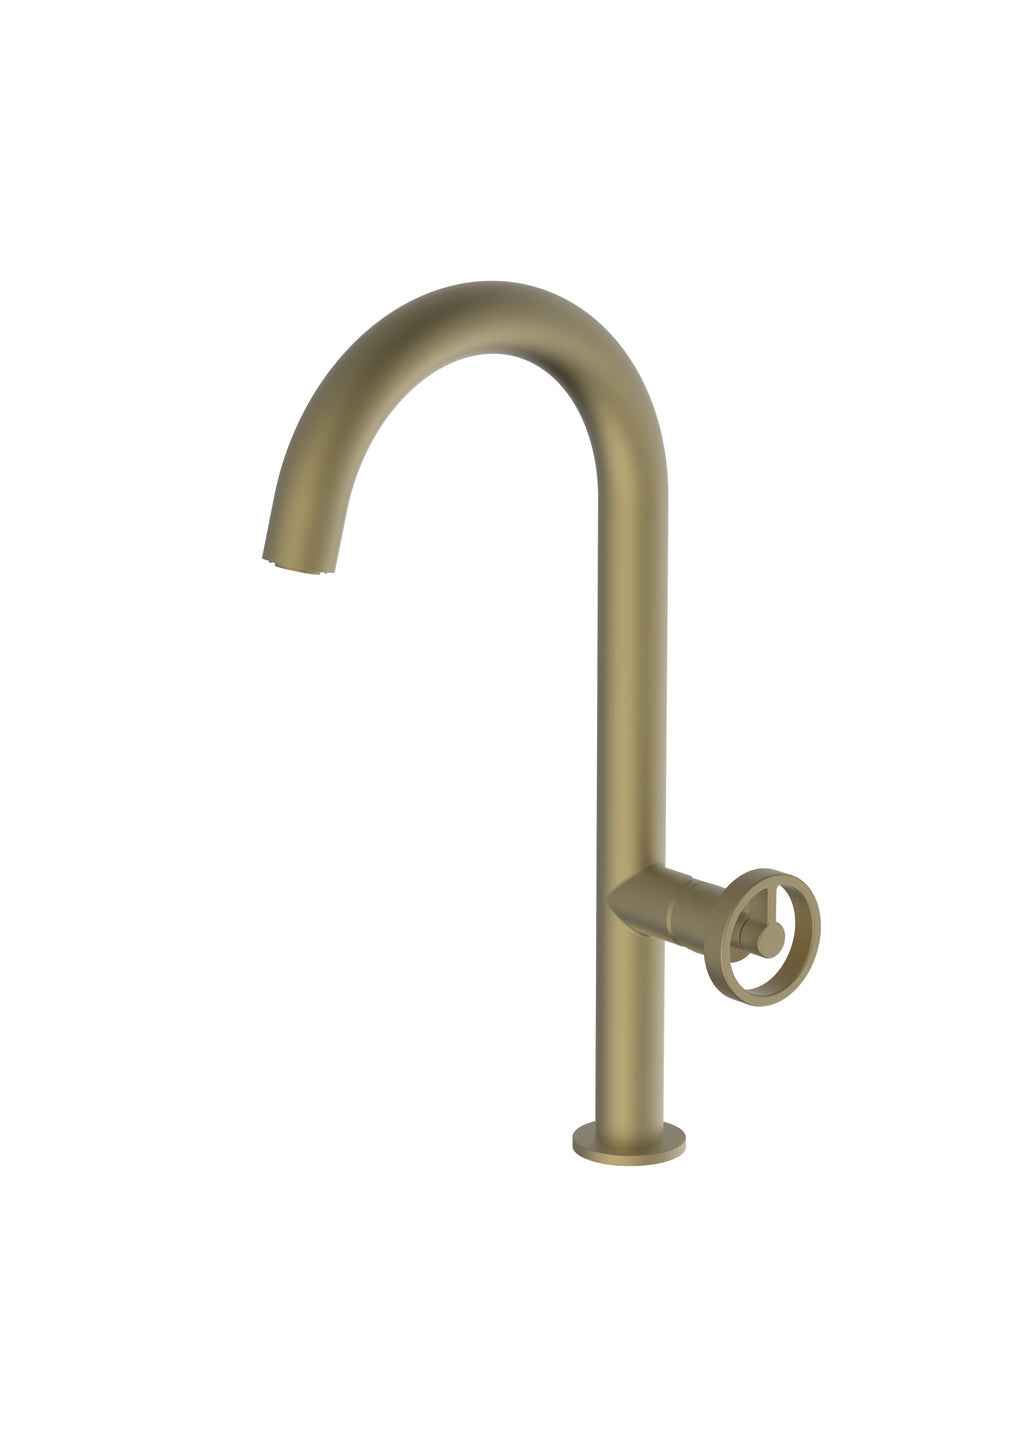 Forte Brass/Gold, kitchen mixer tap